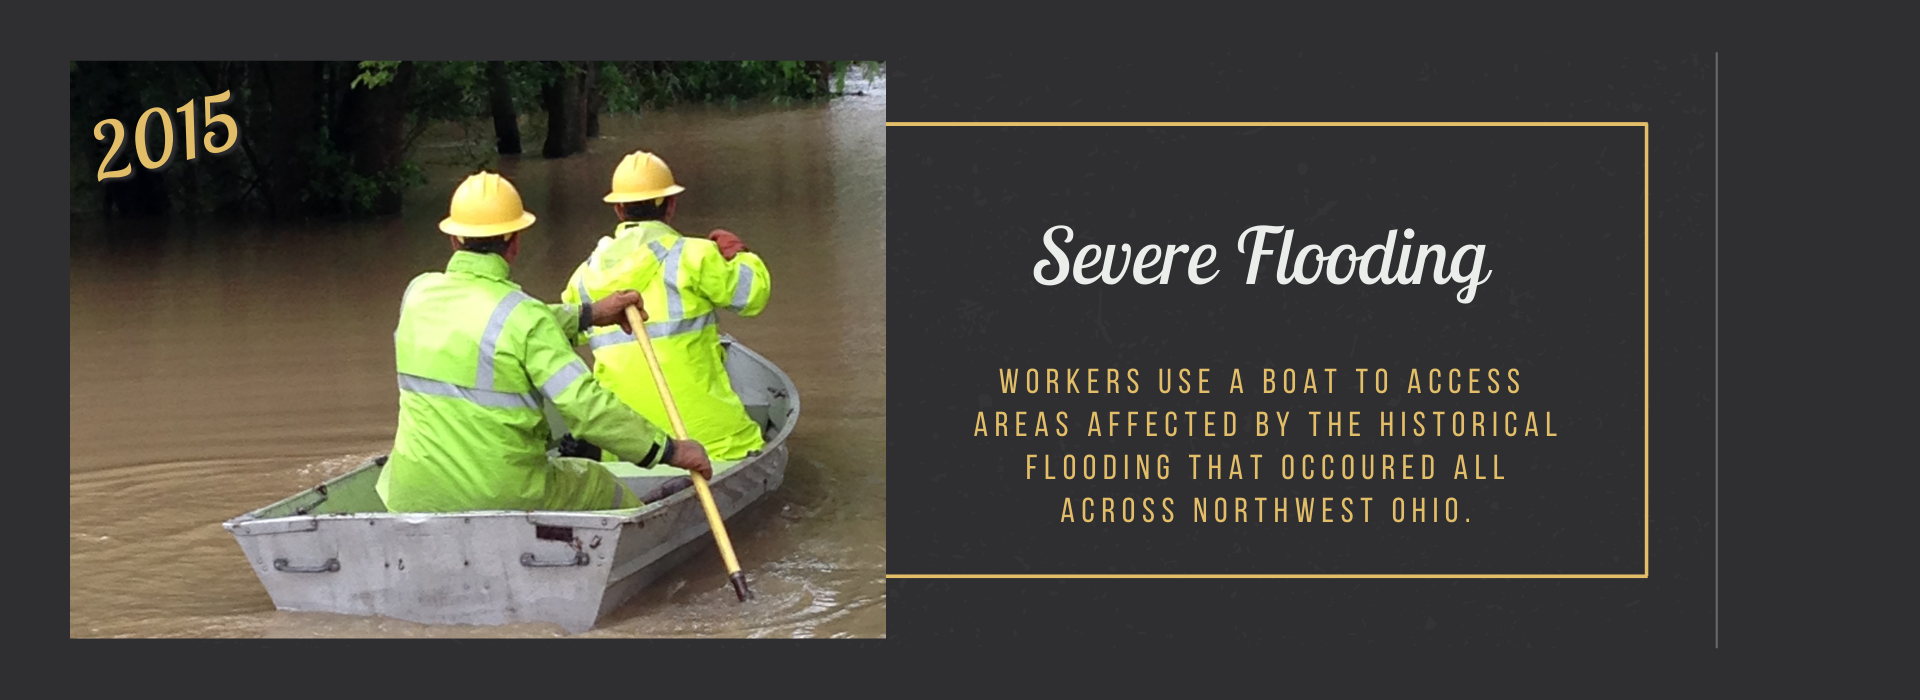 Workers use a boat to access  areas affected by the historical flooding that occoured all across Northwest ohio.